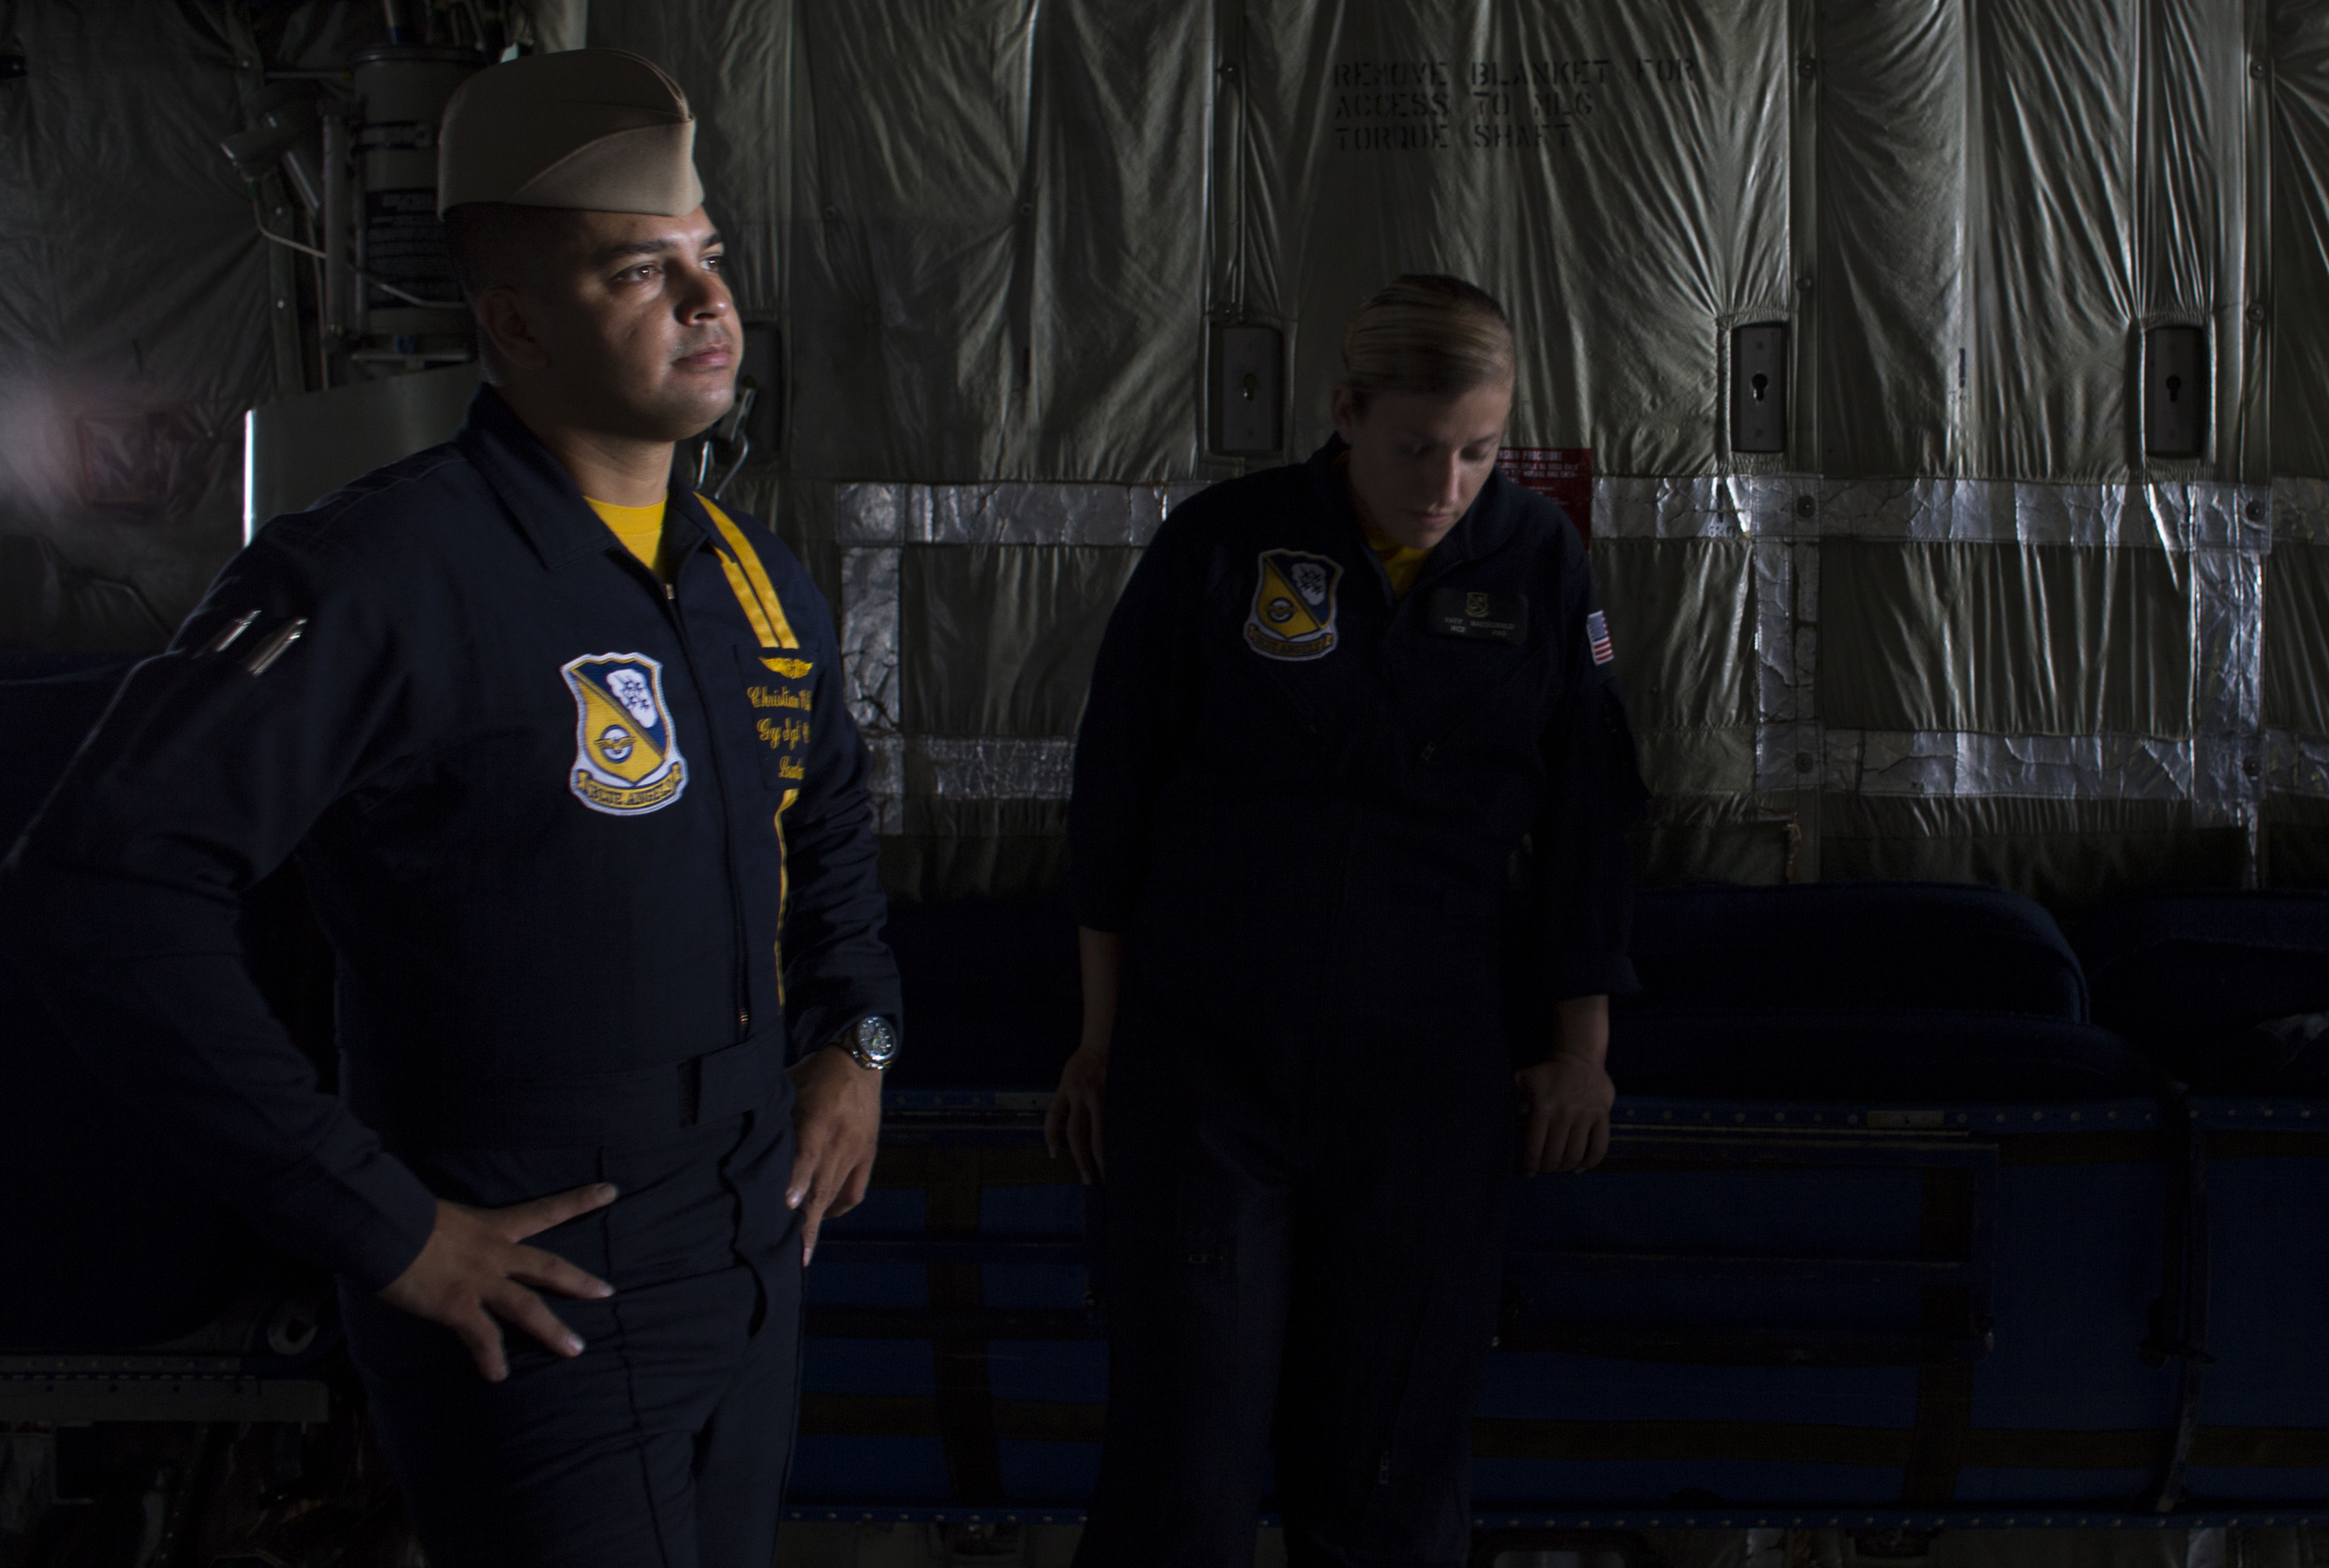 Gunnery Sgt. Chris Villalobos and Mass Communication Specialist Katy Macdonald stand in the back of the Blue Angels' Fat Albert aircraft while waiting for a debriefing after a short flight at the Arnold Palmer Regional Airport.